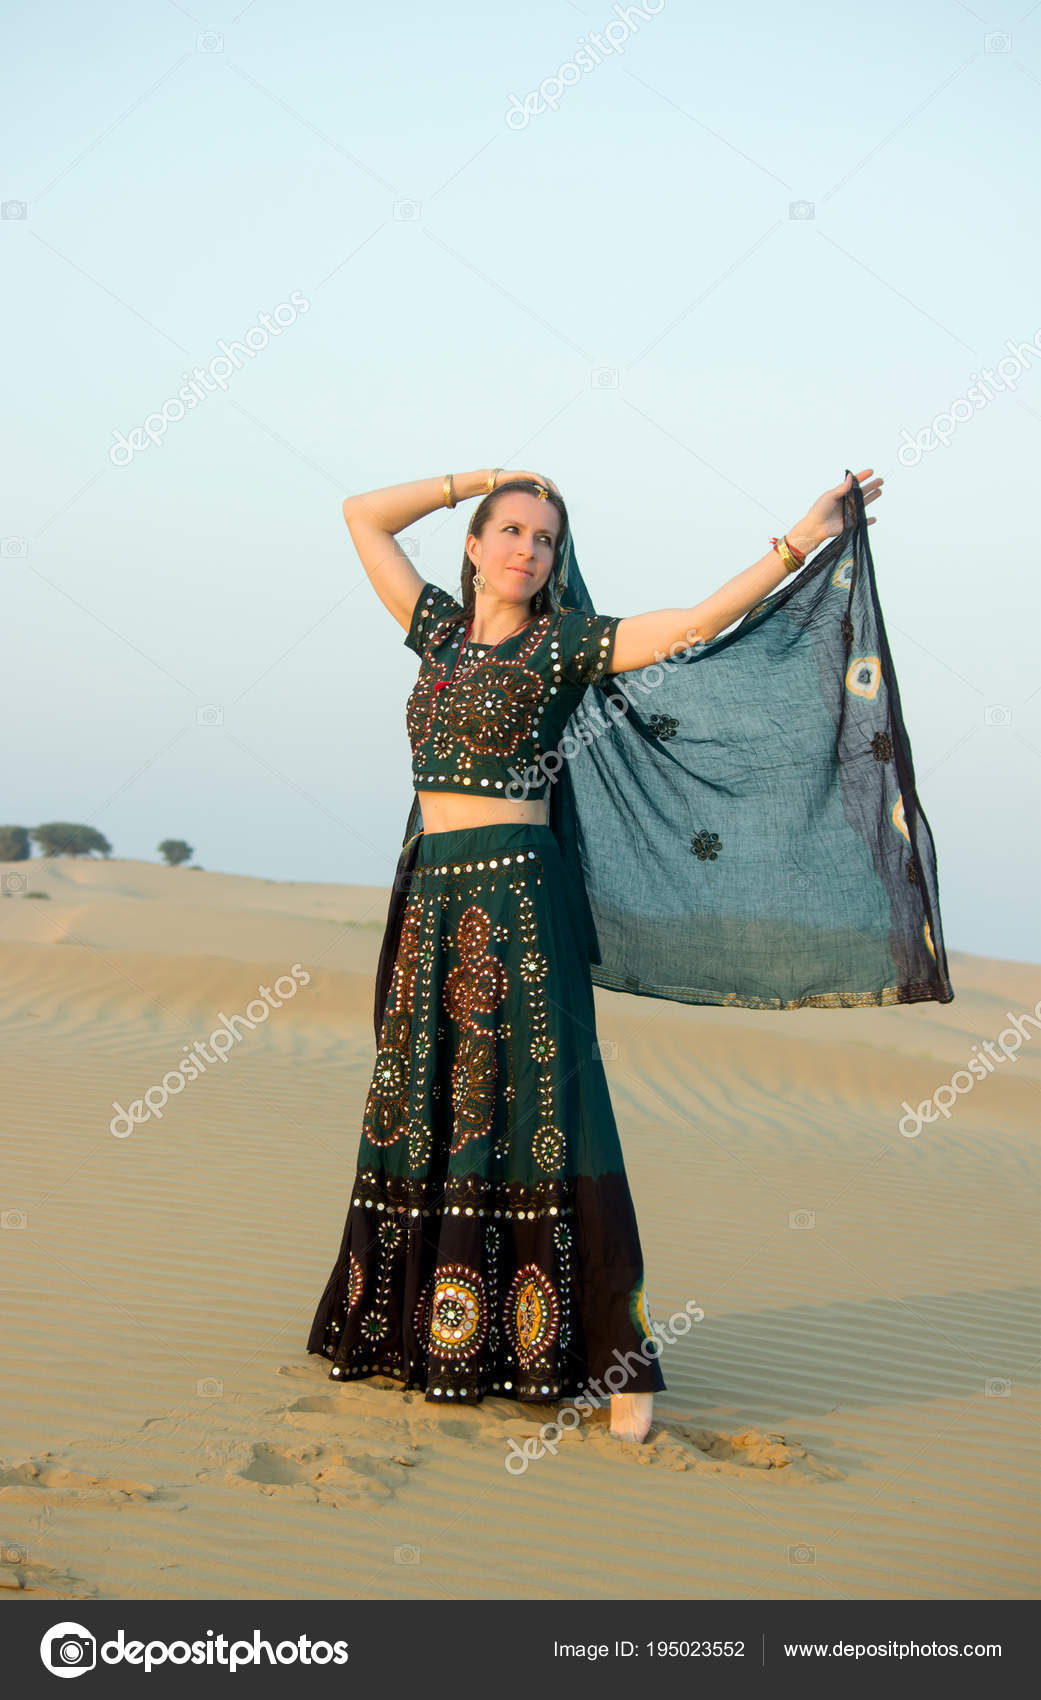 e781efc66d A young woman in Indian national clothes, lit by the setting sun, dancing  in the sands of the Thar Desert, waving a veil. Rajasthan, India.– stock  image